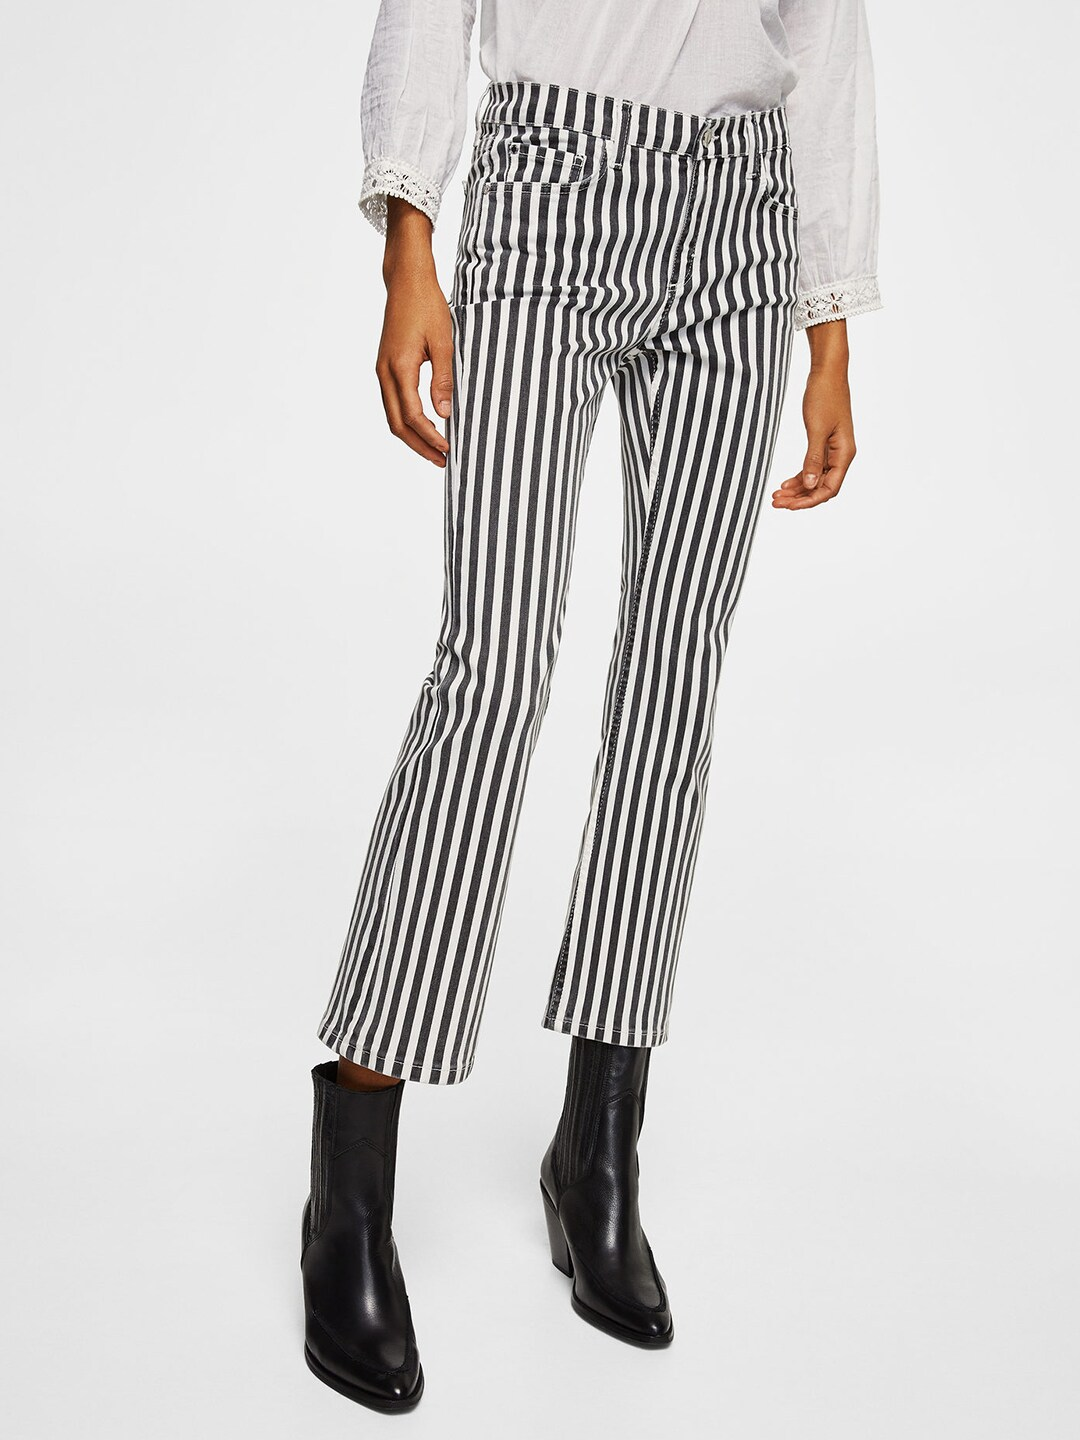 Women Striped Jeans - Buy Women Striped Jeans online in India 723473c6f